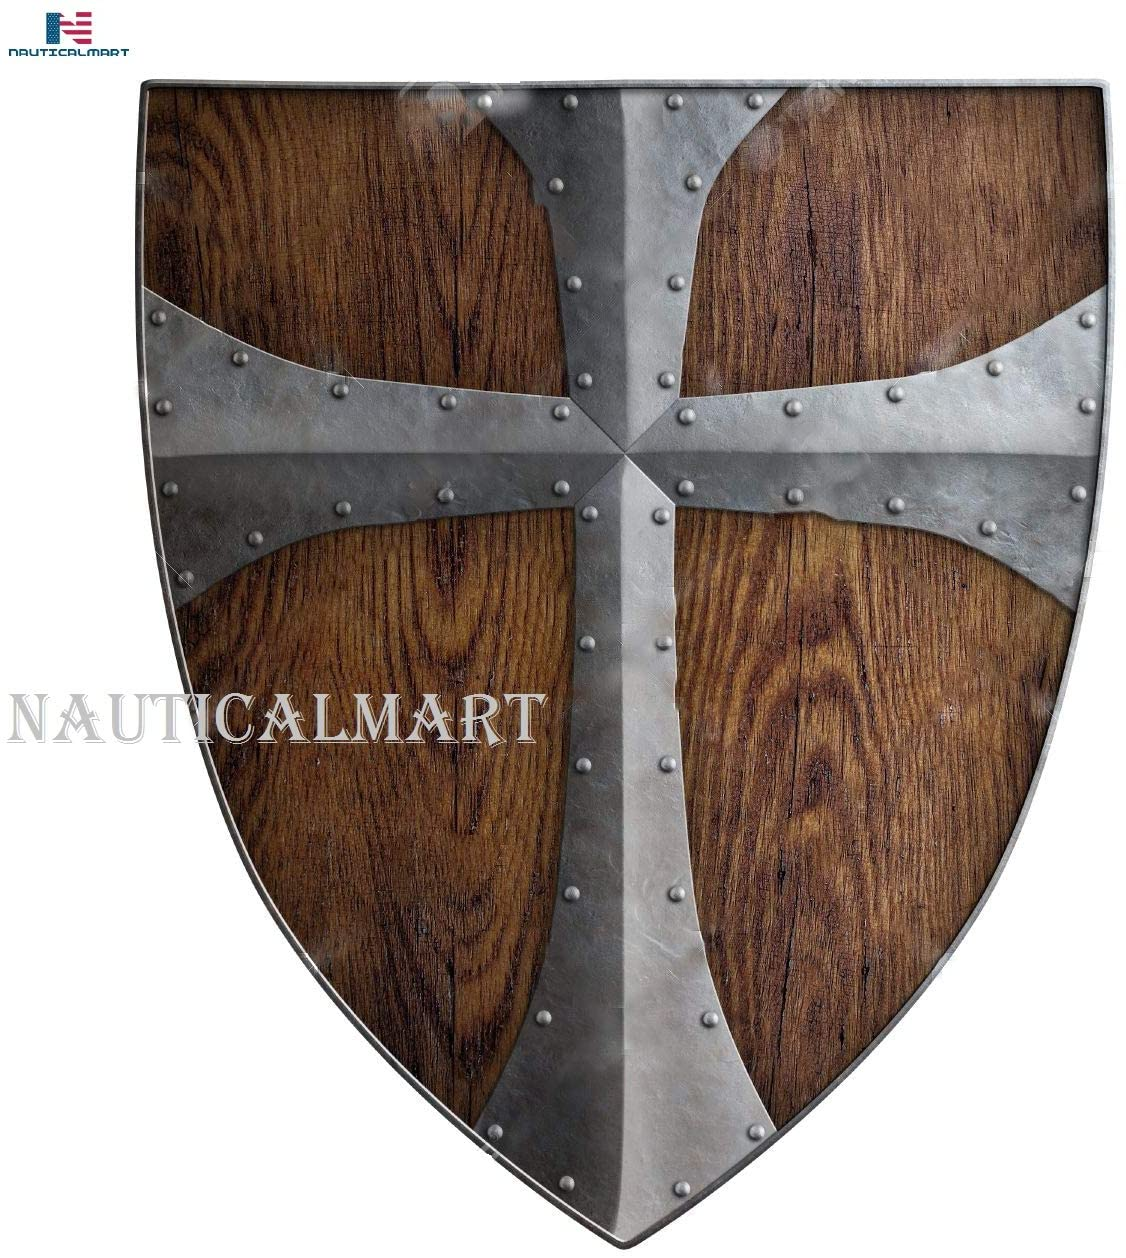 Nautical-Mart Medieval Crusader Wooden Shield - SCA/LARP/Norse/Norway/Antique/Armor